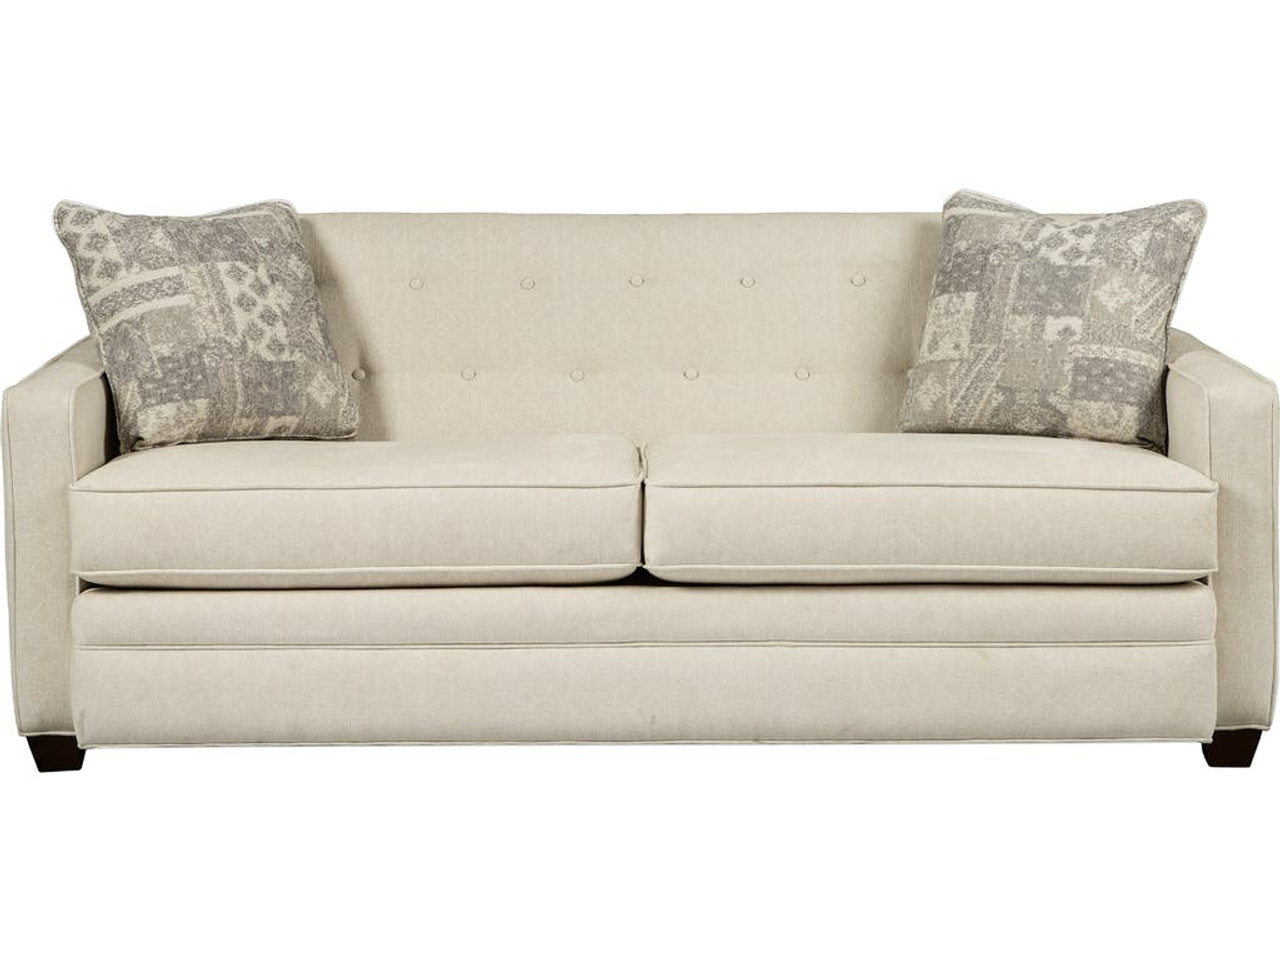 - Buy The Craftmaster Model 777150-68 Sleeper Sofa/Couch On Sale